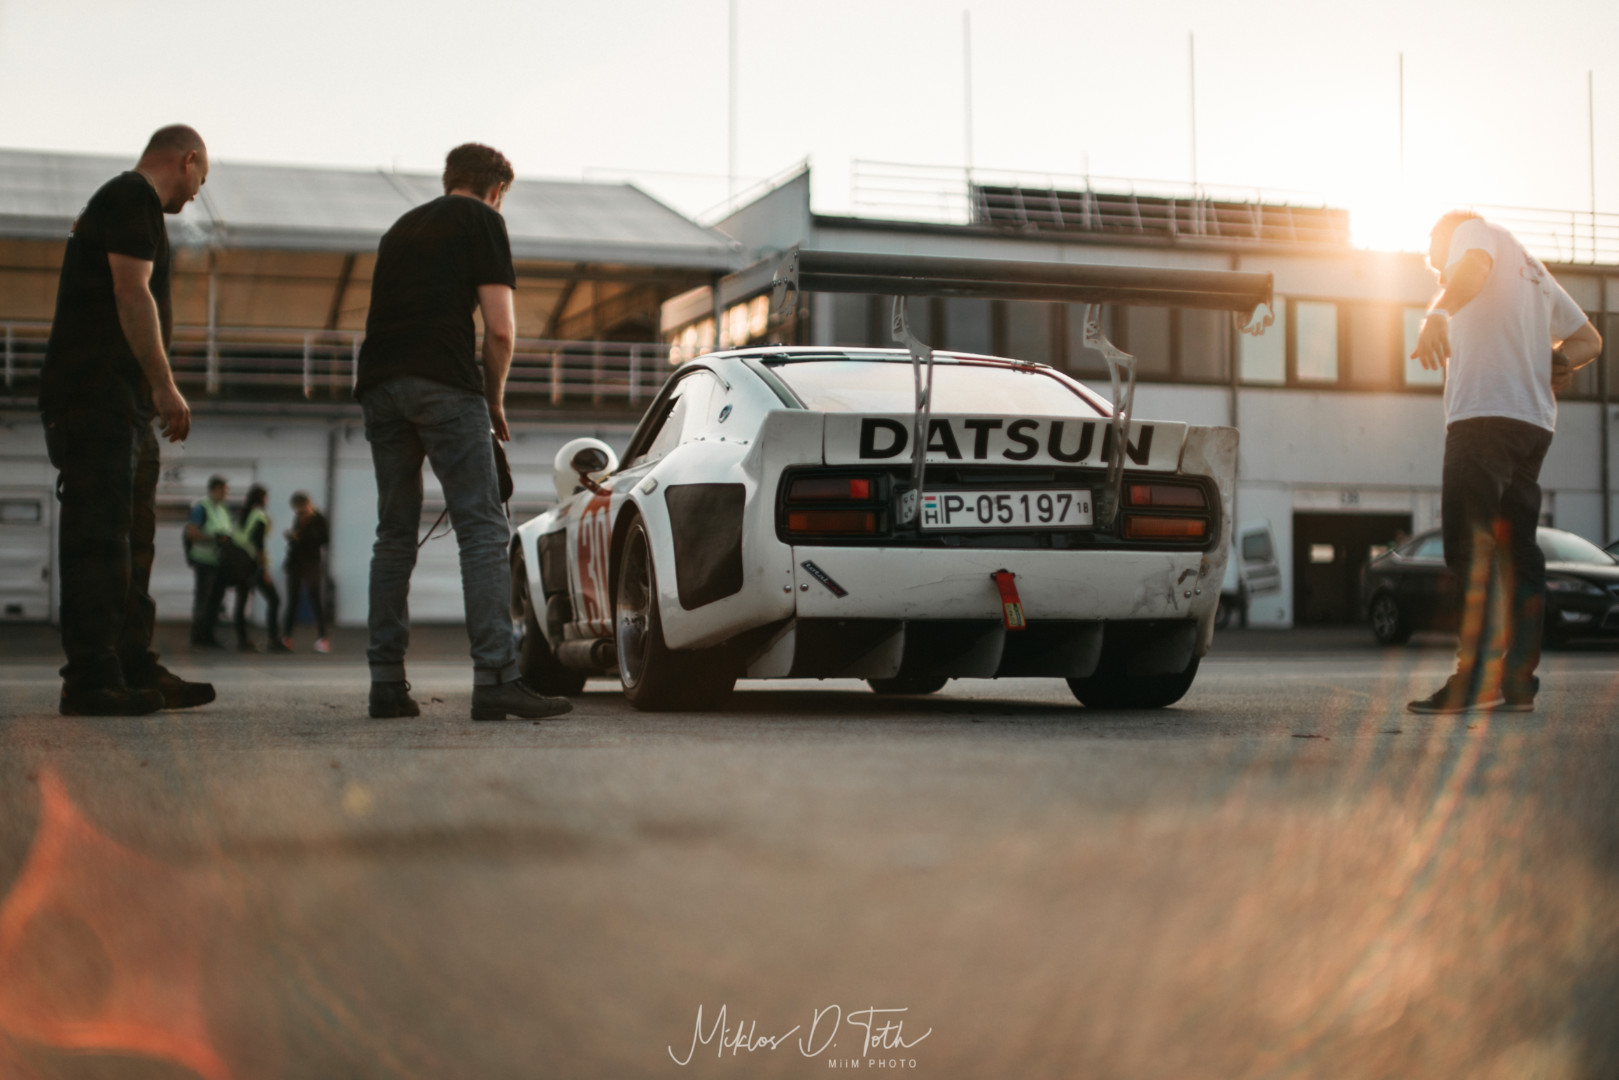 aardvark_the_datsun_hungaroring_2018_14.jpg